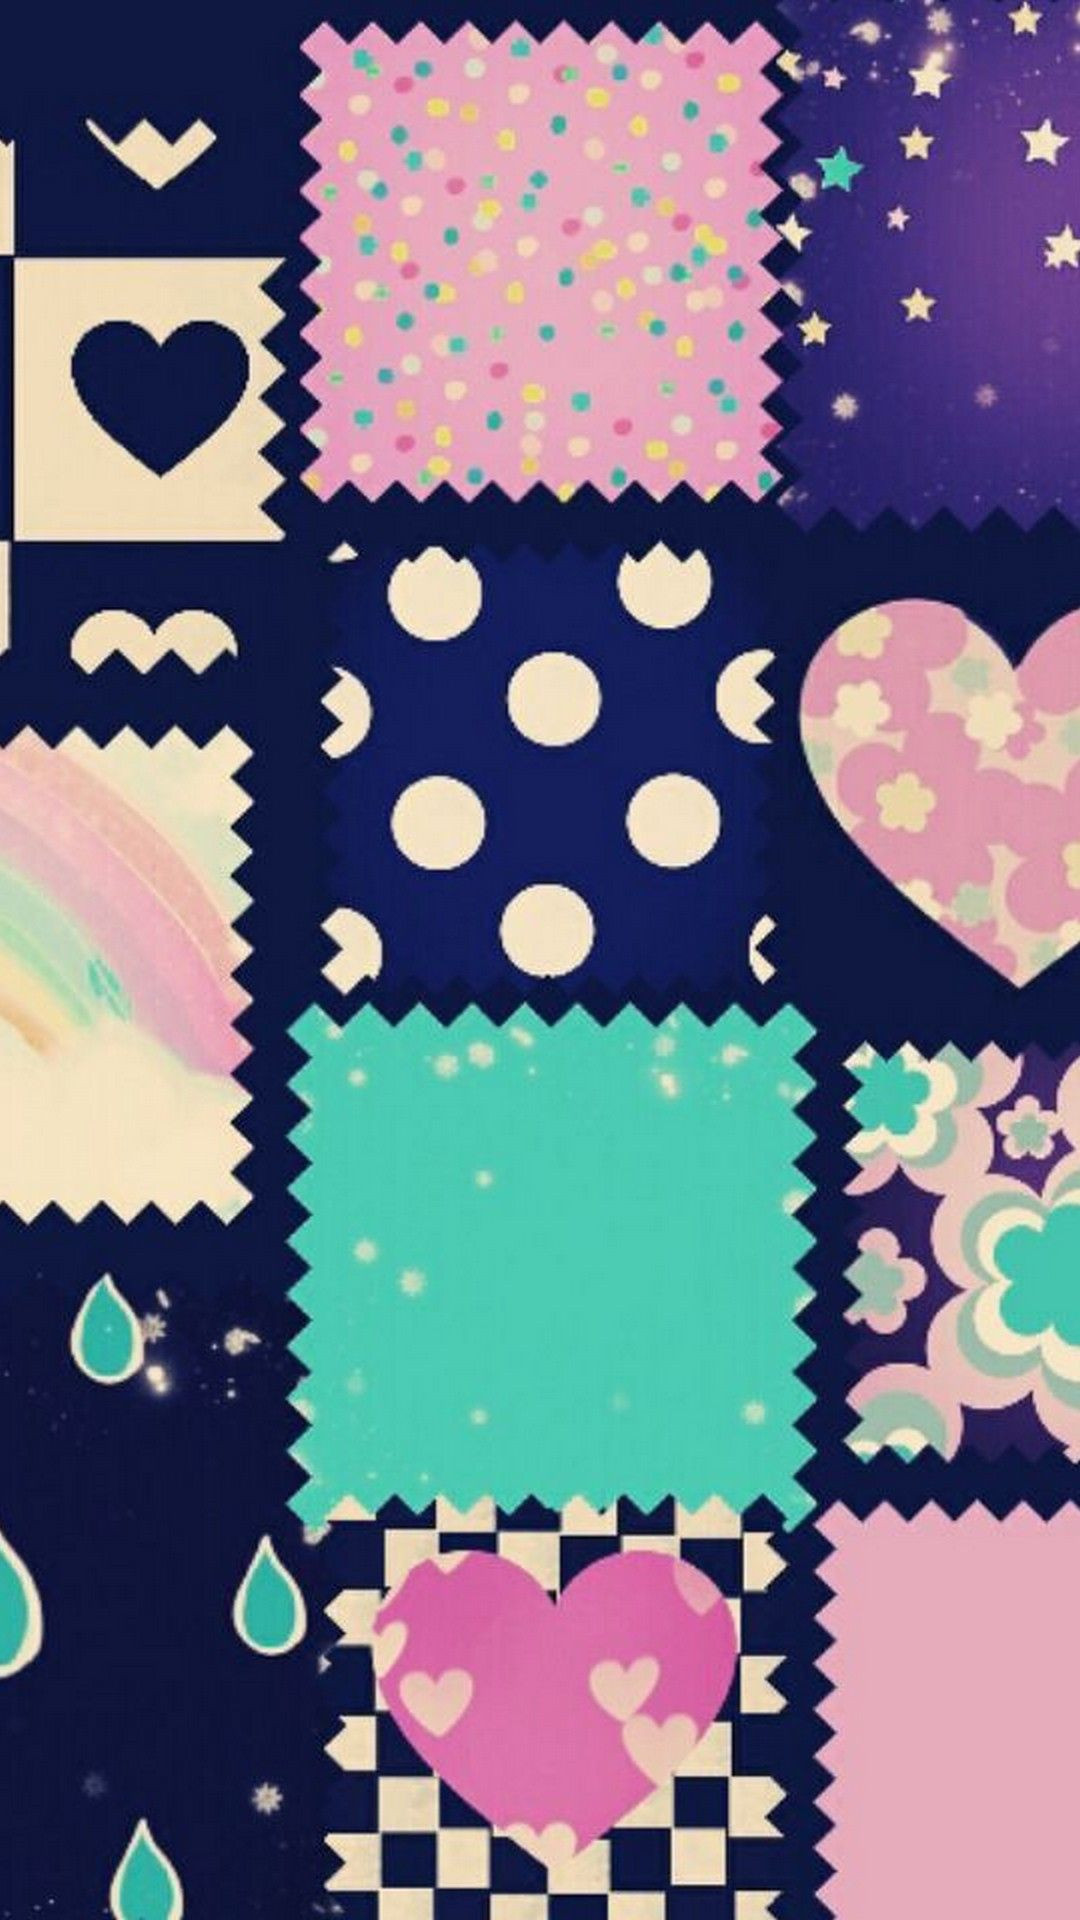 914 Vintage Girly Wallpapers 2020